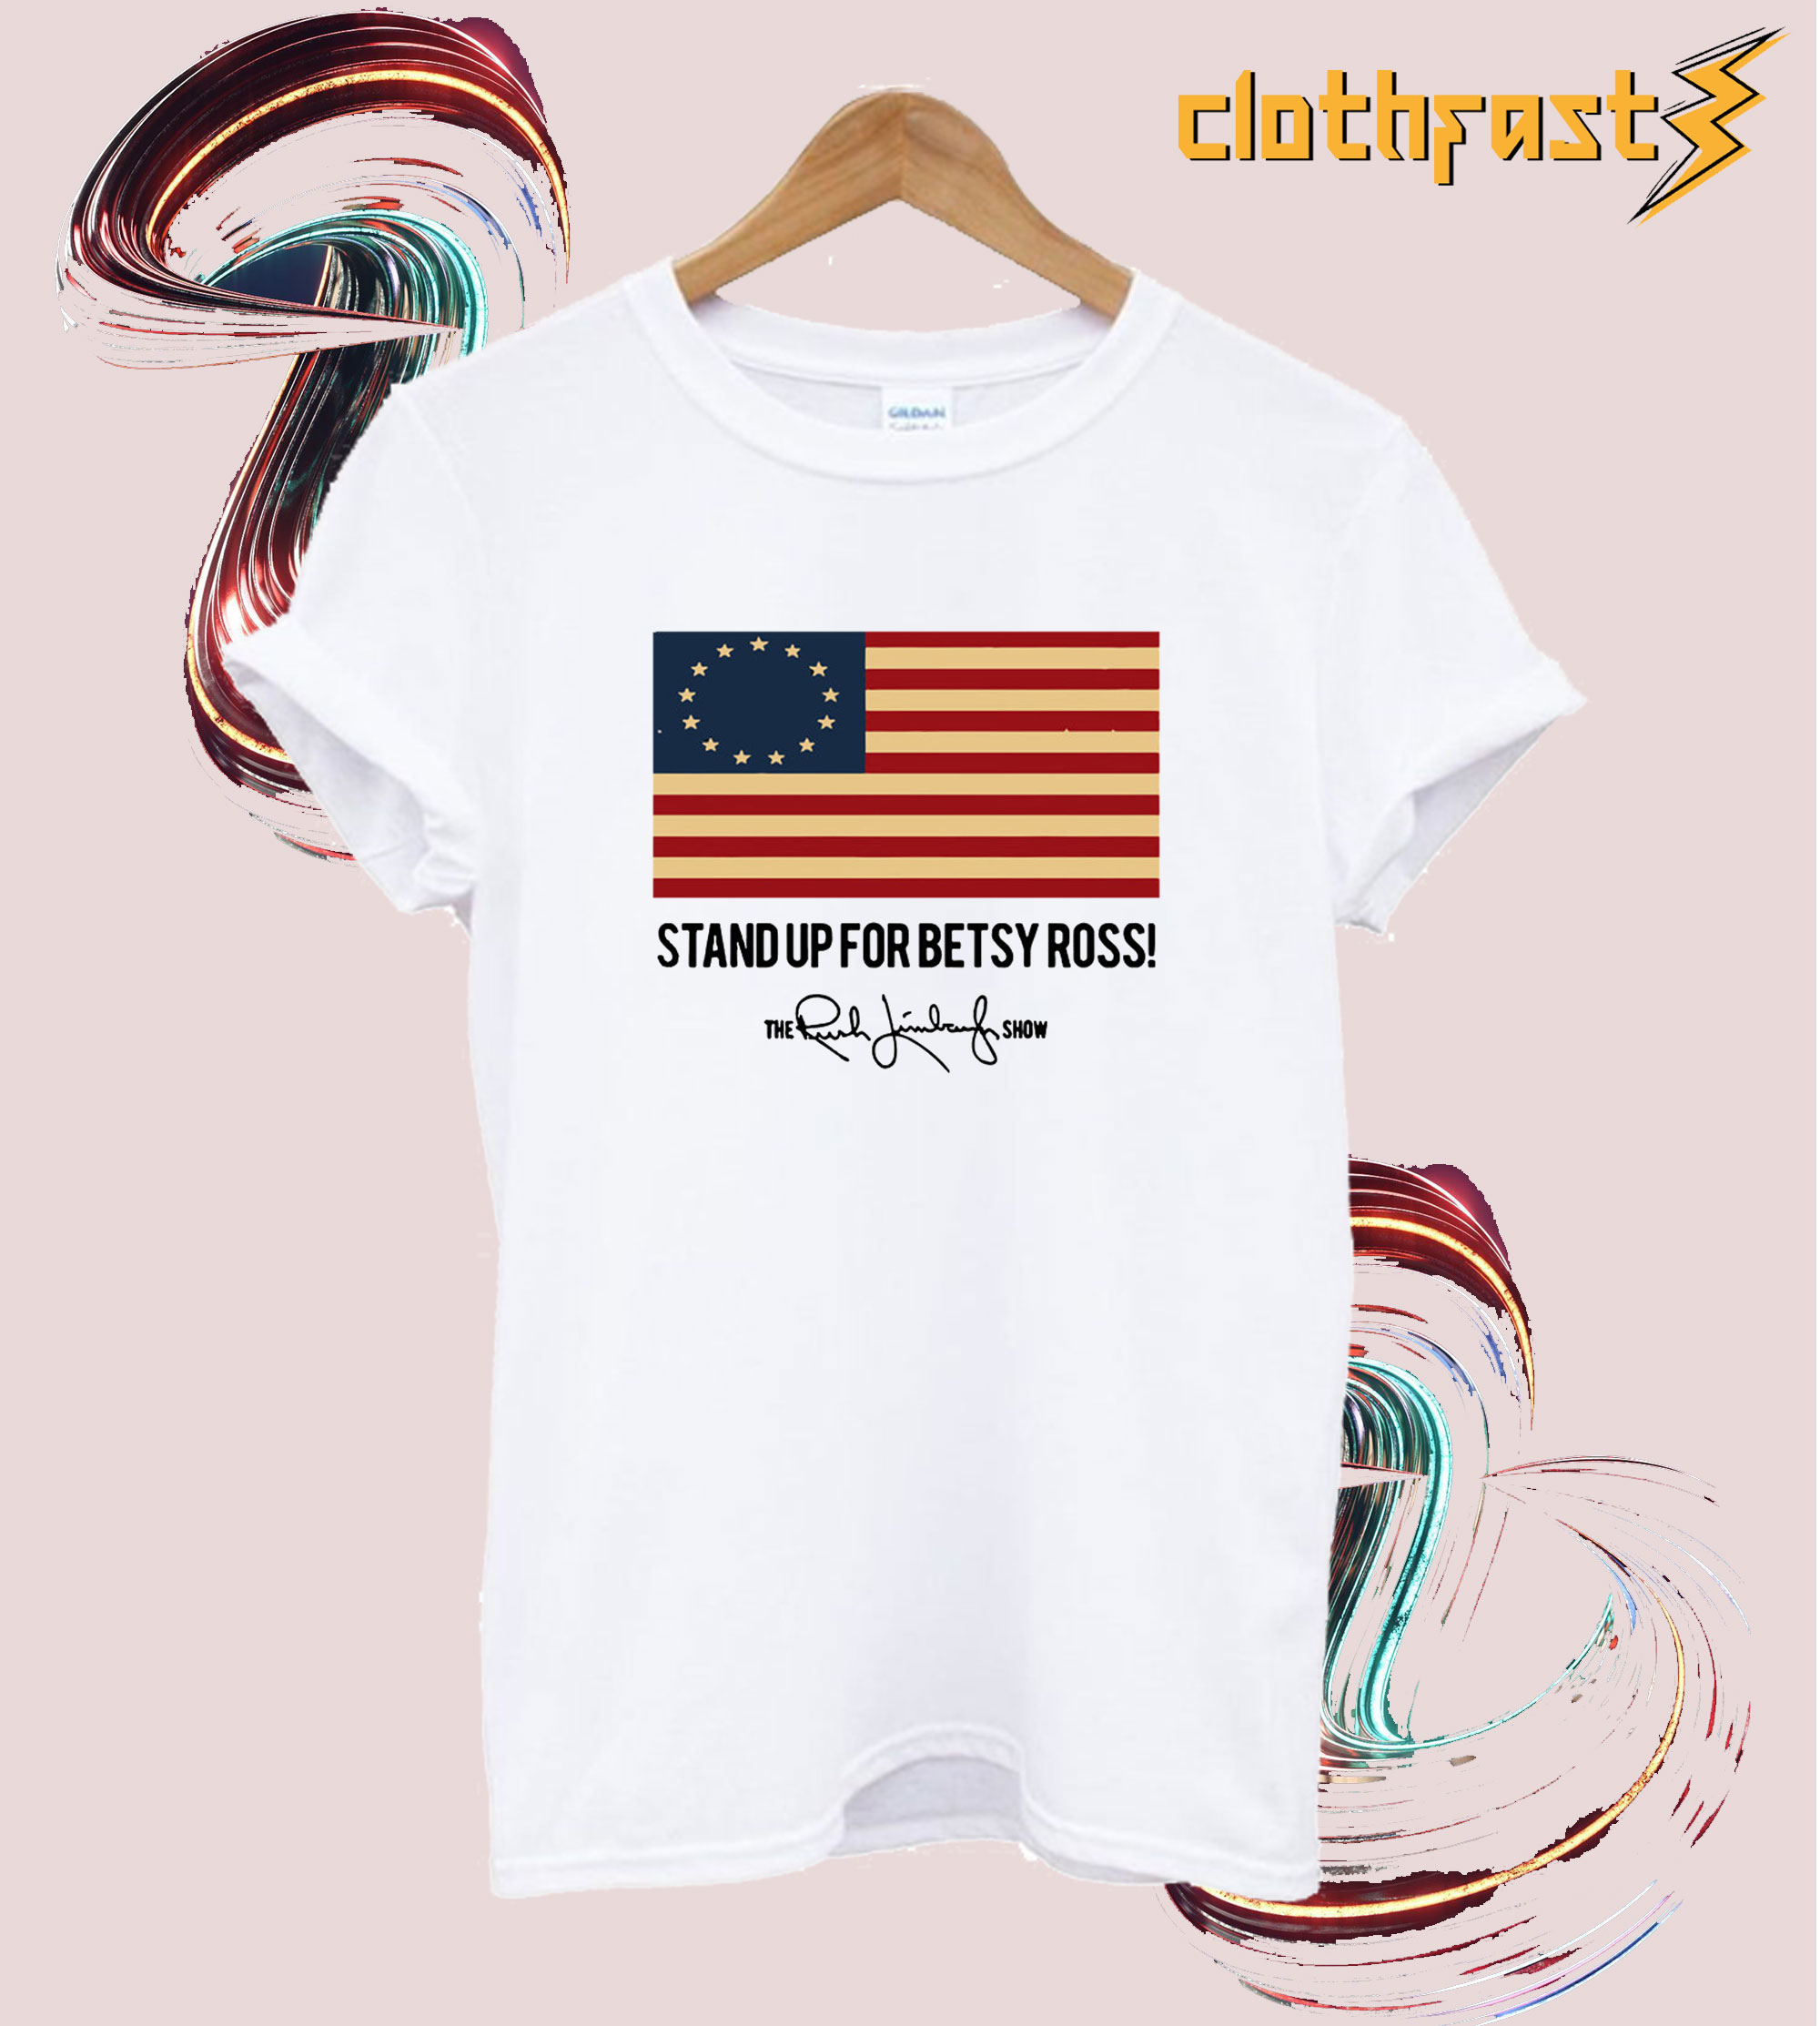 Rush Limbaugh Betsy Ross T-Shirt